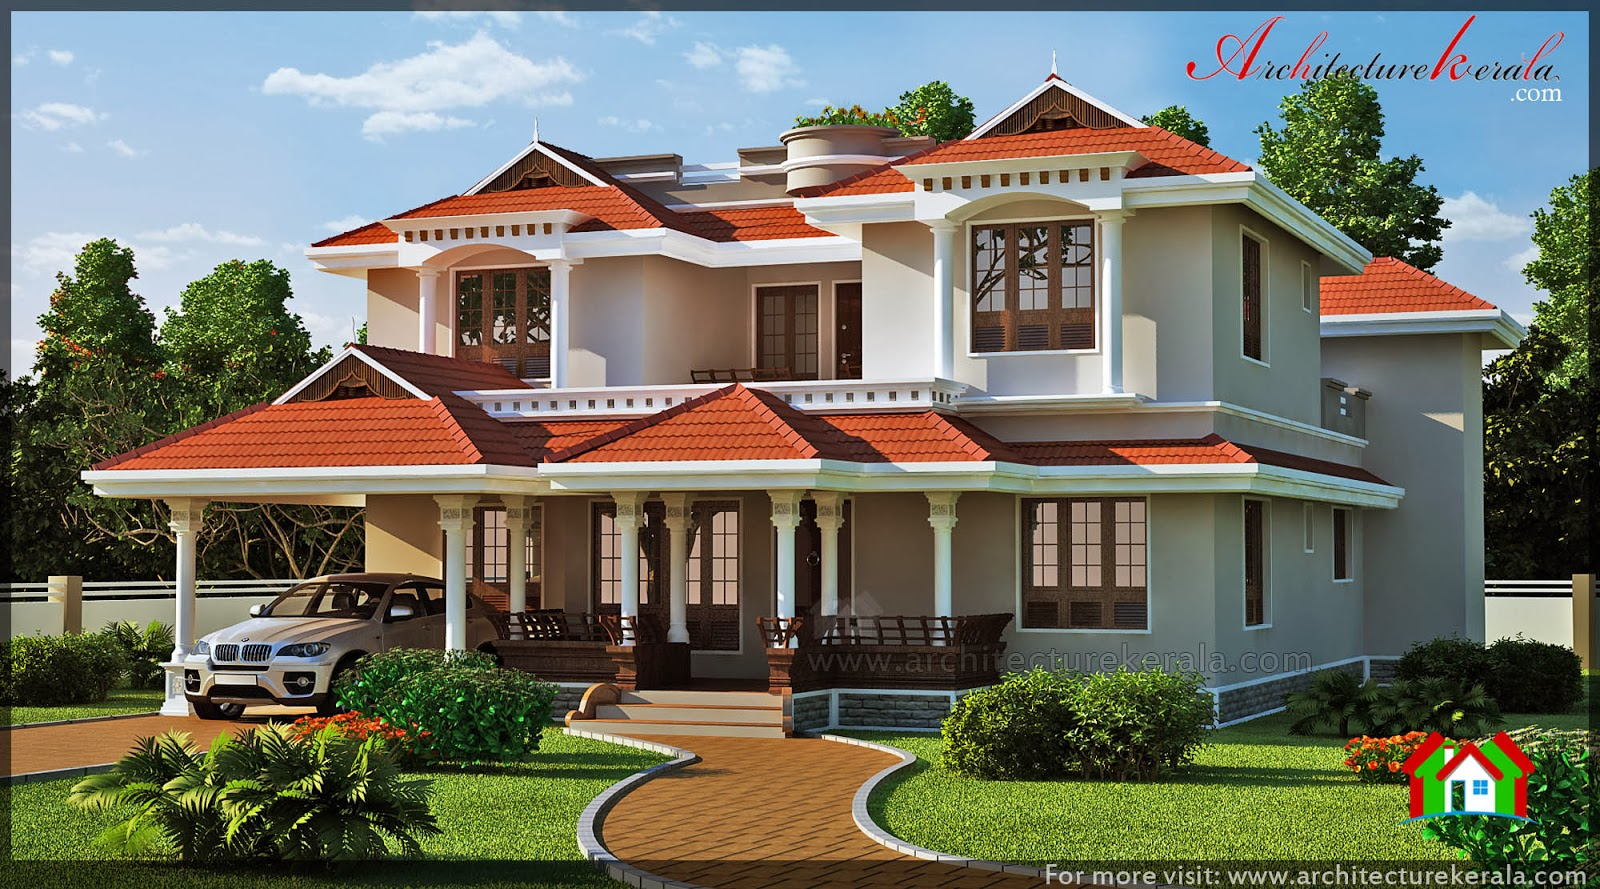 Traditional kerala house elevation architecture kerala for House models and plans